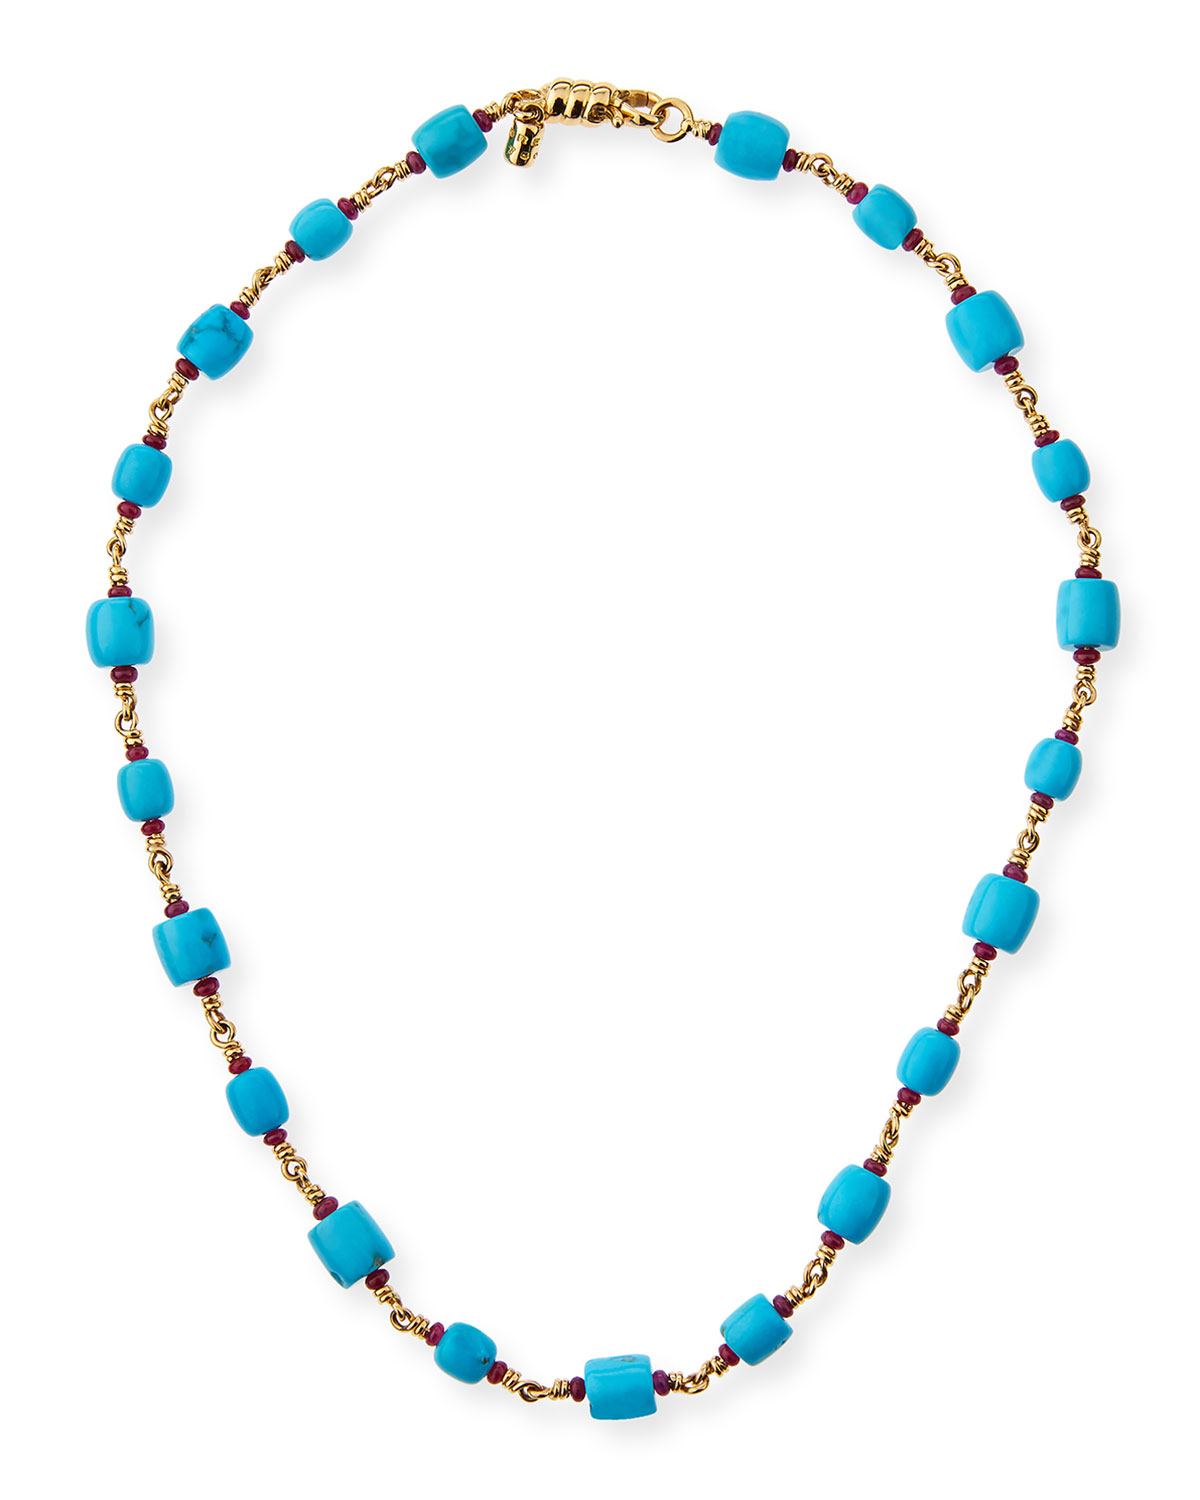 PAUL MORELLI TURQUOISE BARREL BEAD NECKLACE WITH RUBIES